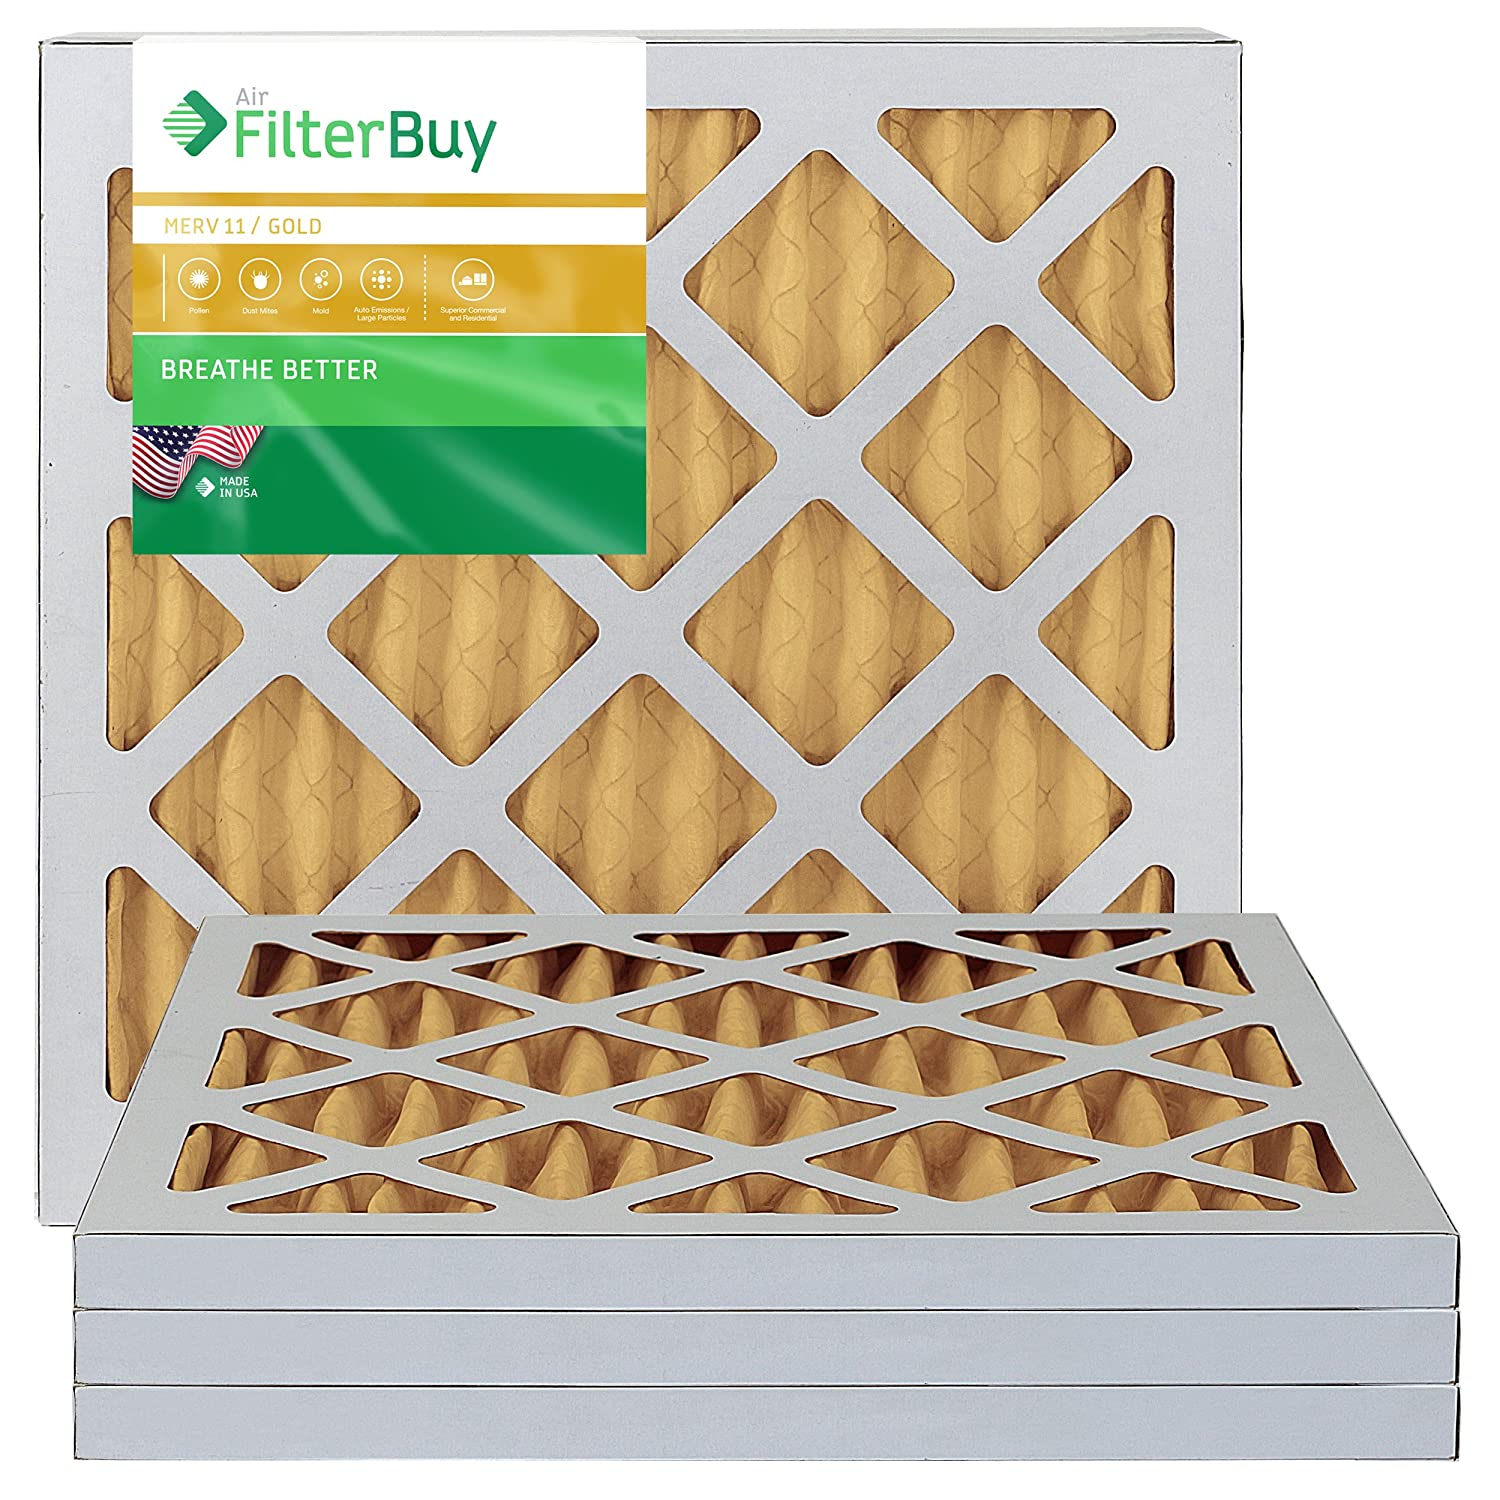 FilterBuy 10x10x1 MERV 11 Pleated AC Furnace Air Filter, (Pack of 4 Filters), 10x10x1 – Gold